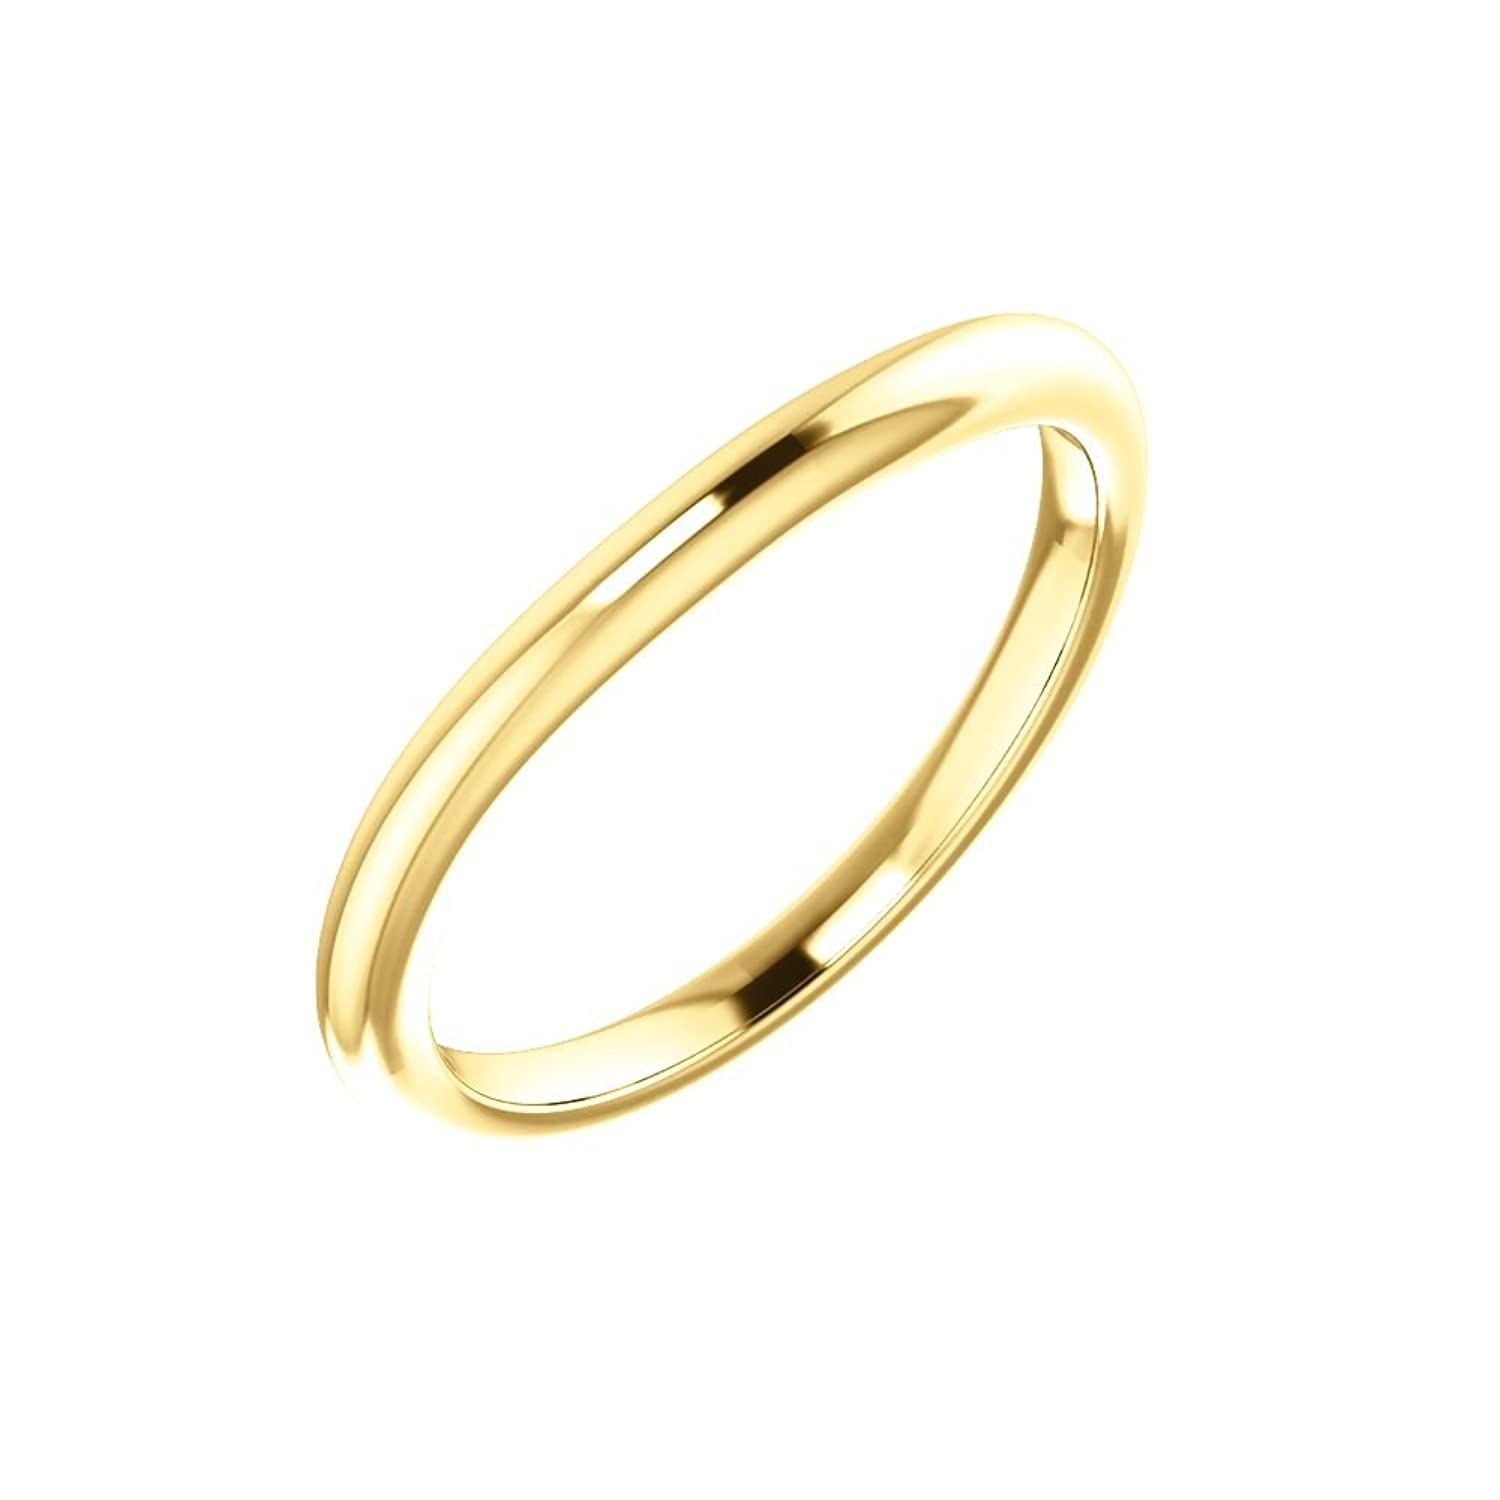 STU001- 10K Yellow Band for 4mm Square Ring